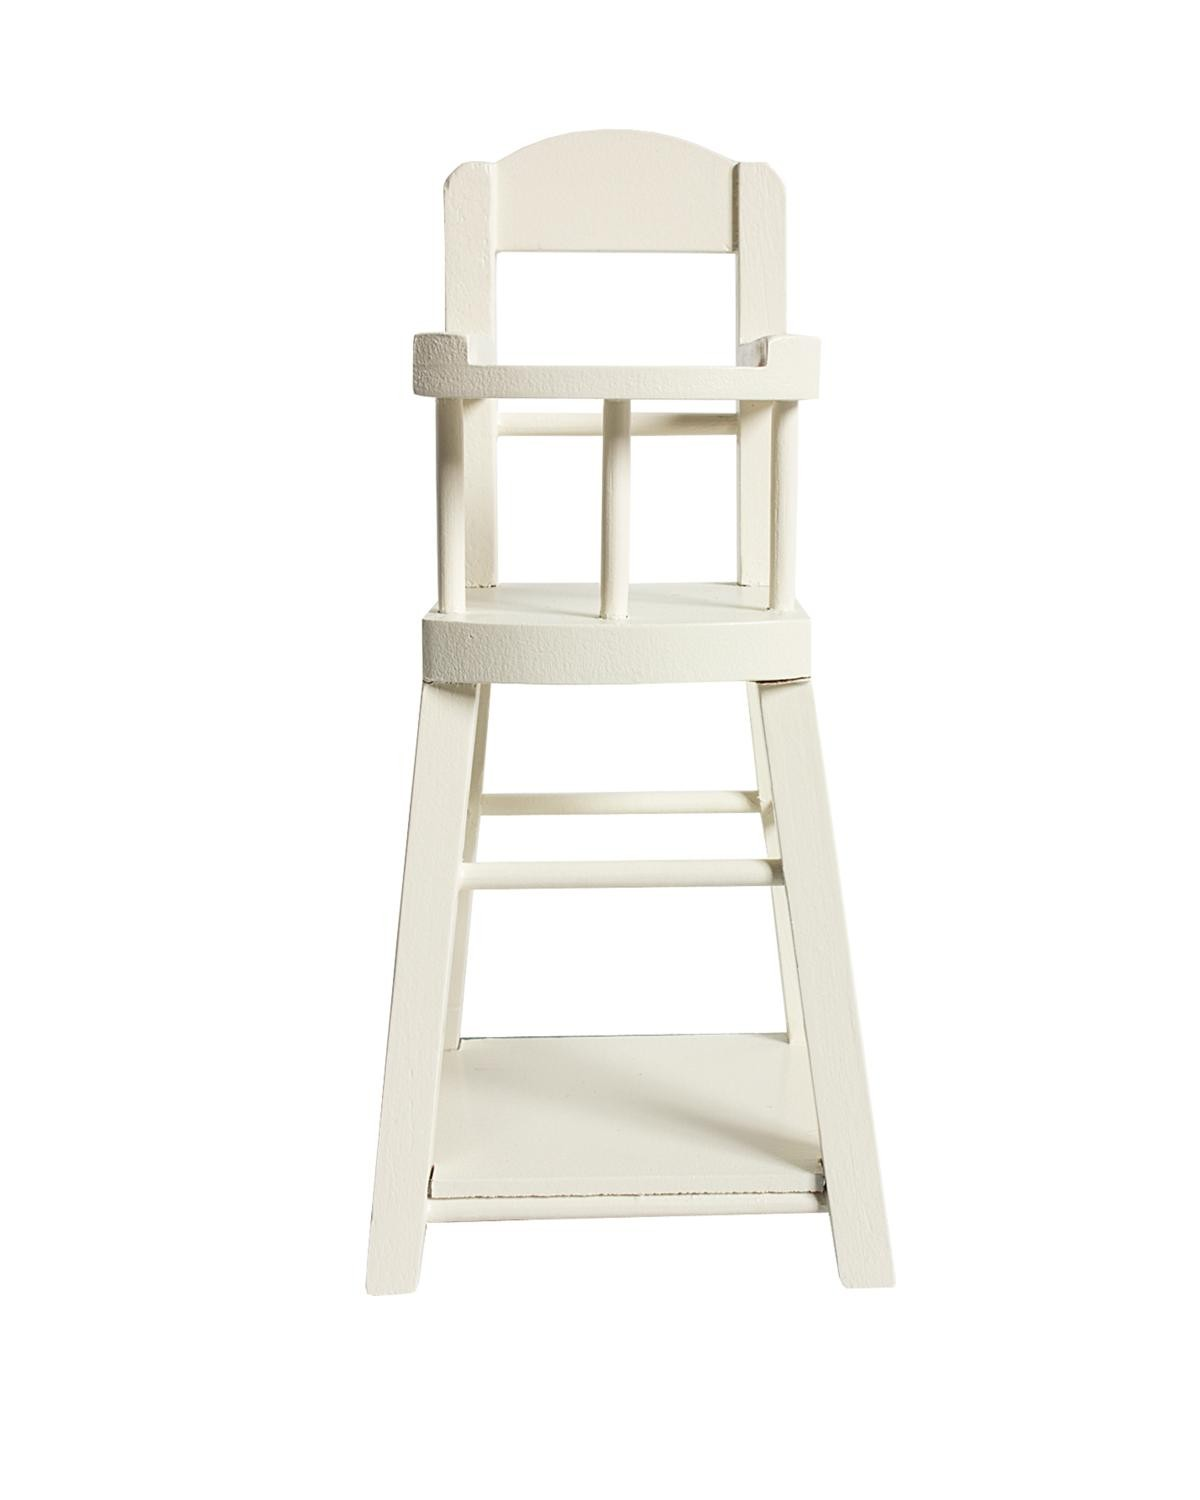 Maileg Micro High Chair In White